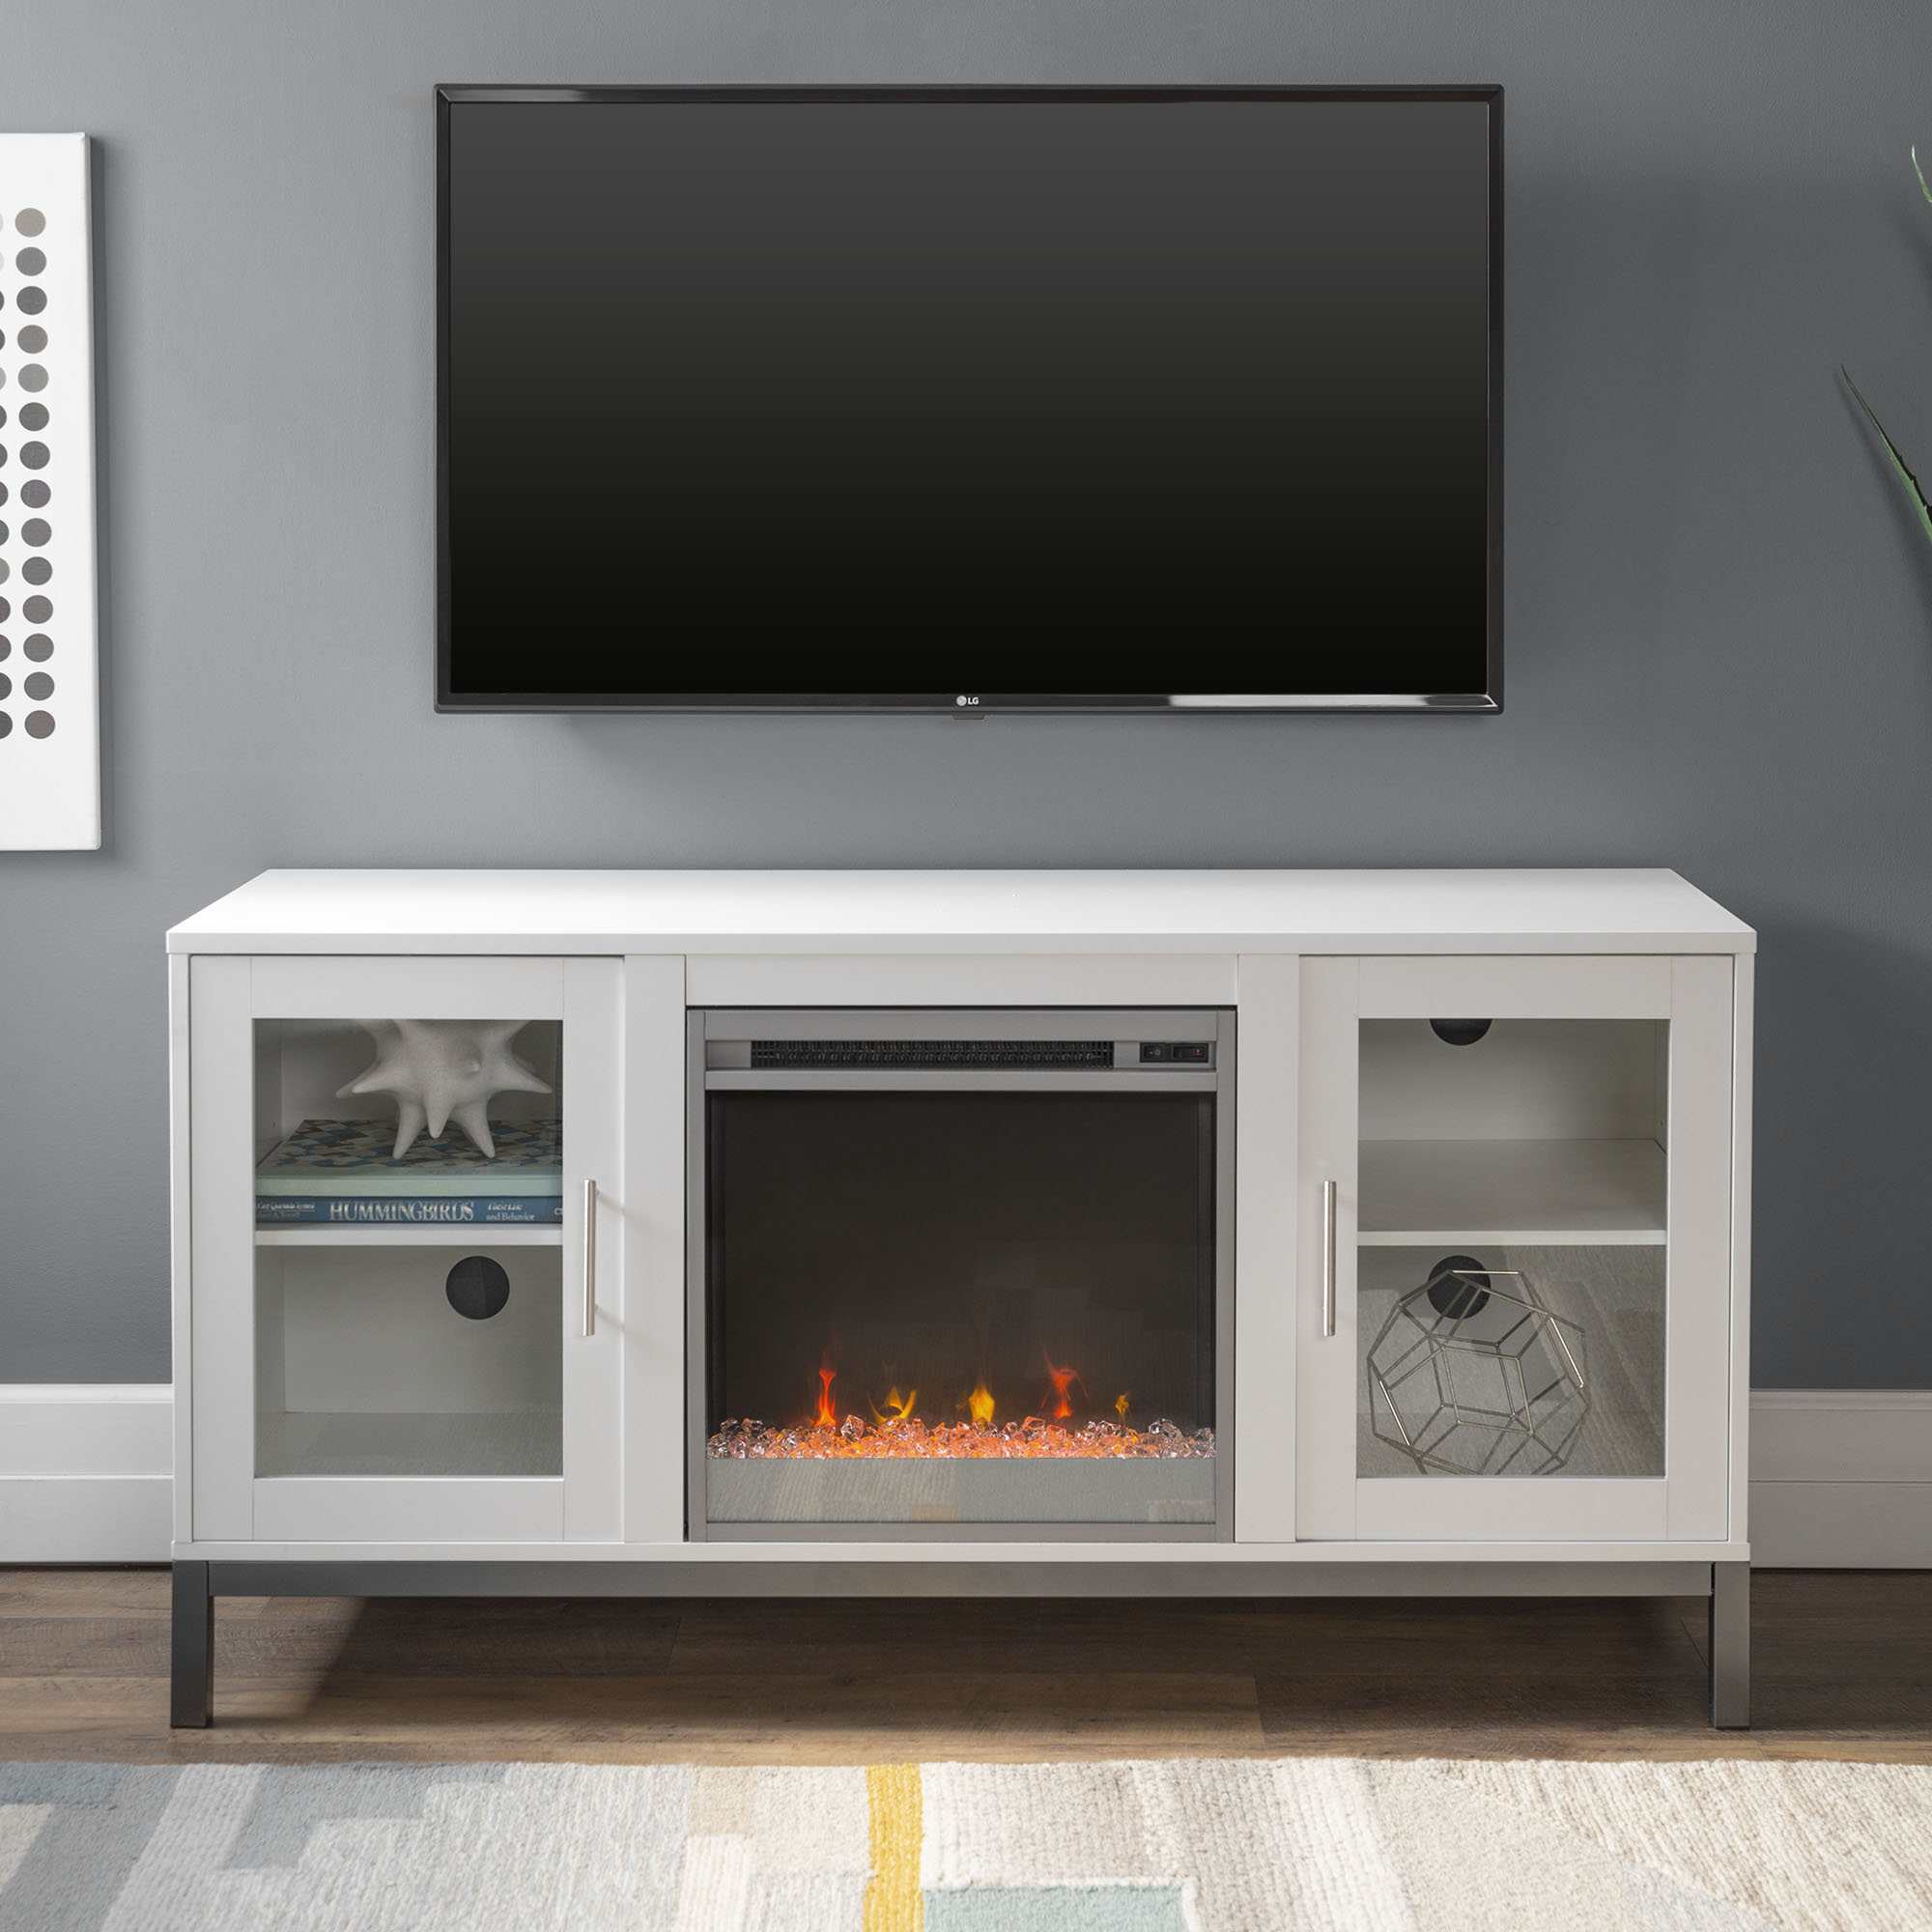 "Manor Park Modern Fireplace TV Stand for TV's up to 56"" - White"